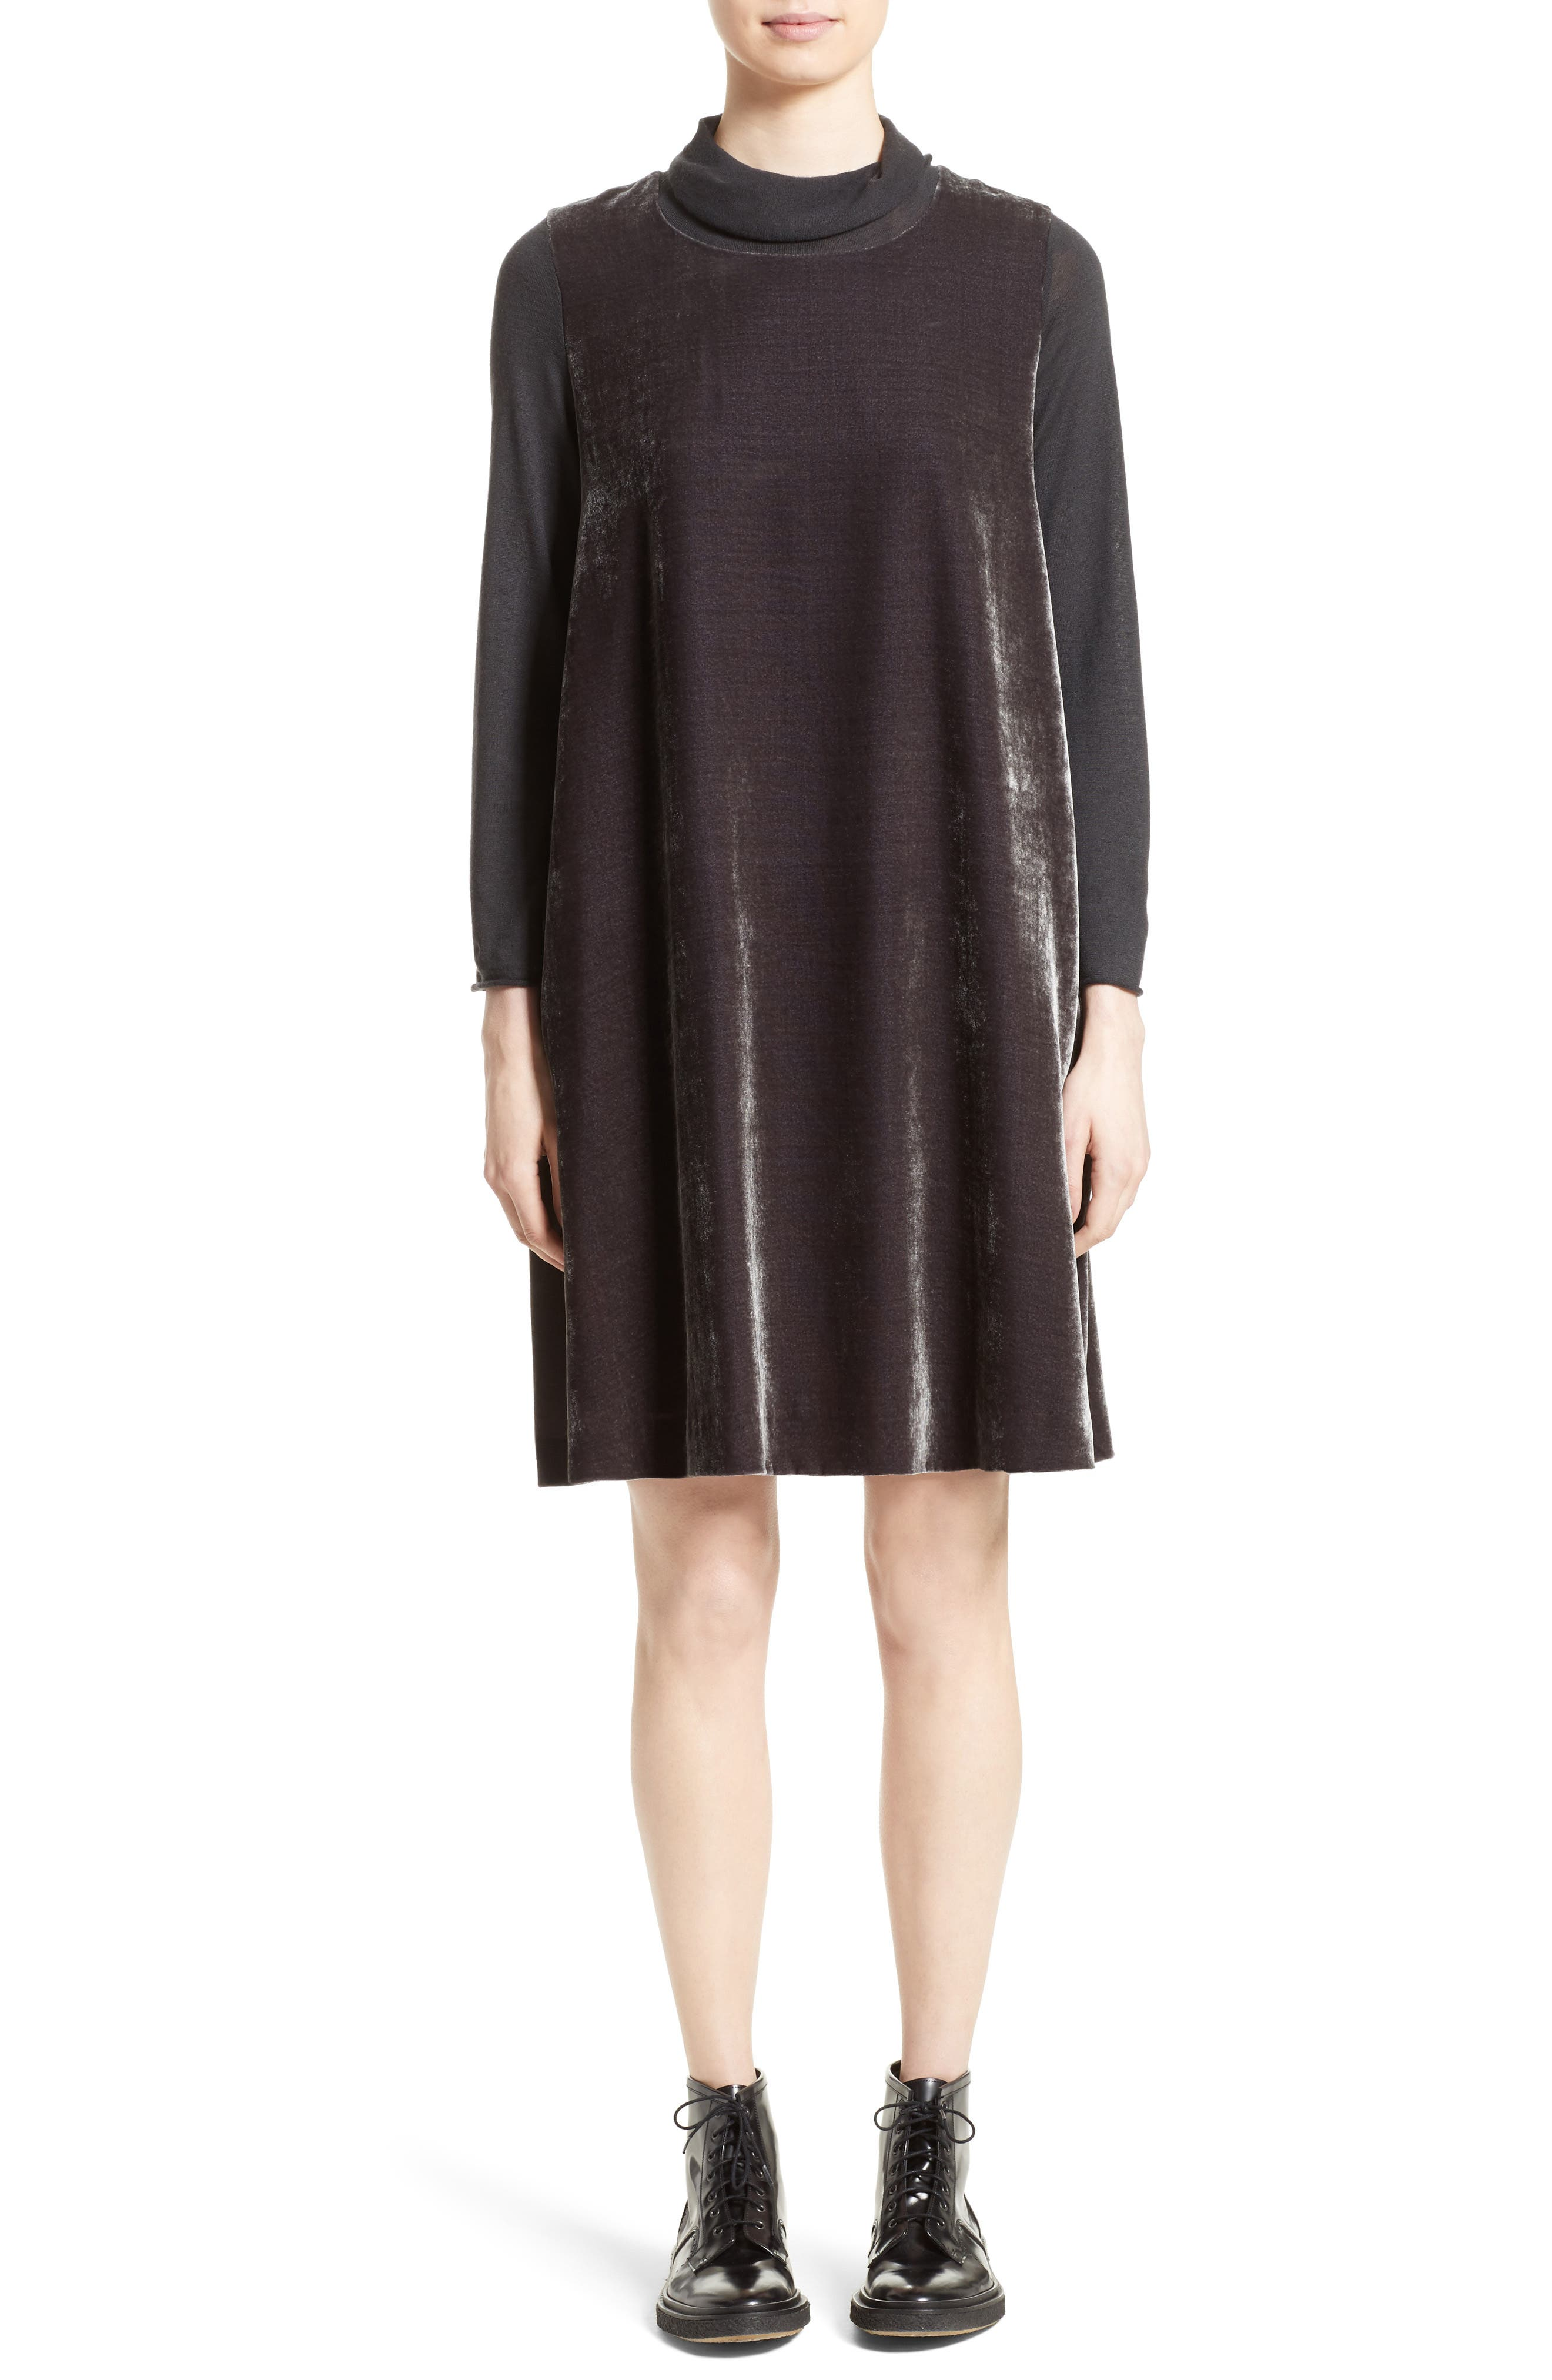 Fabiana Filippi Velvet Turtleneck Dress